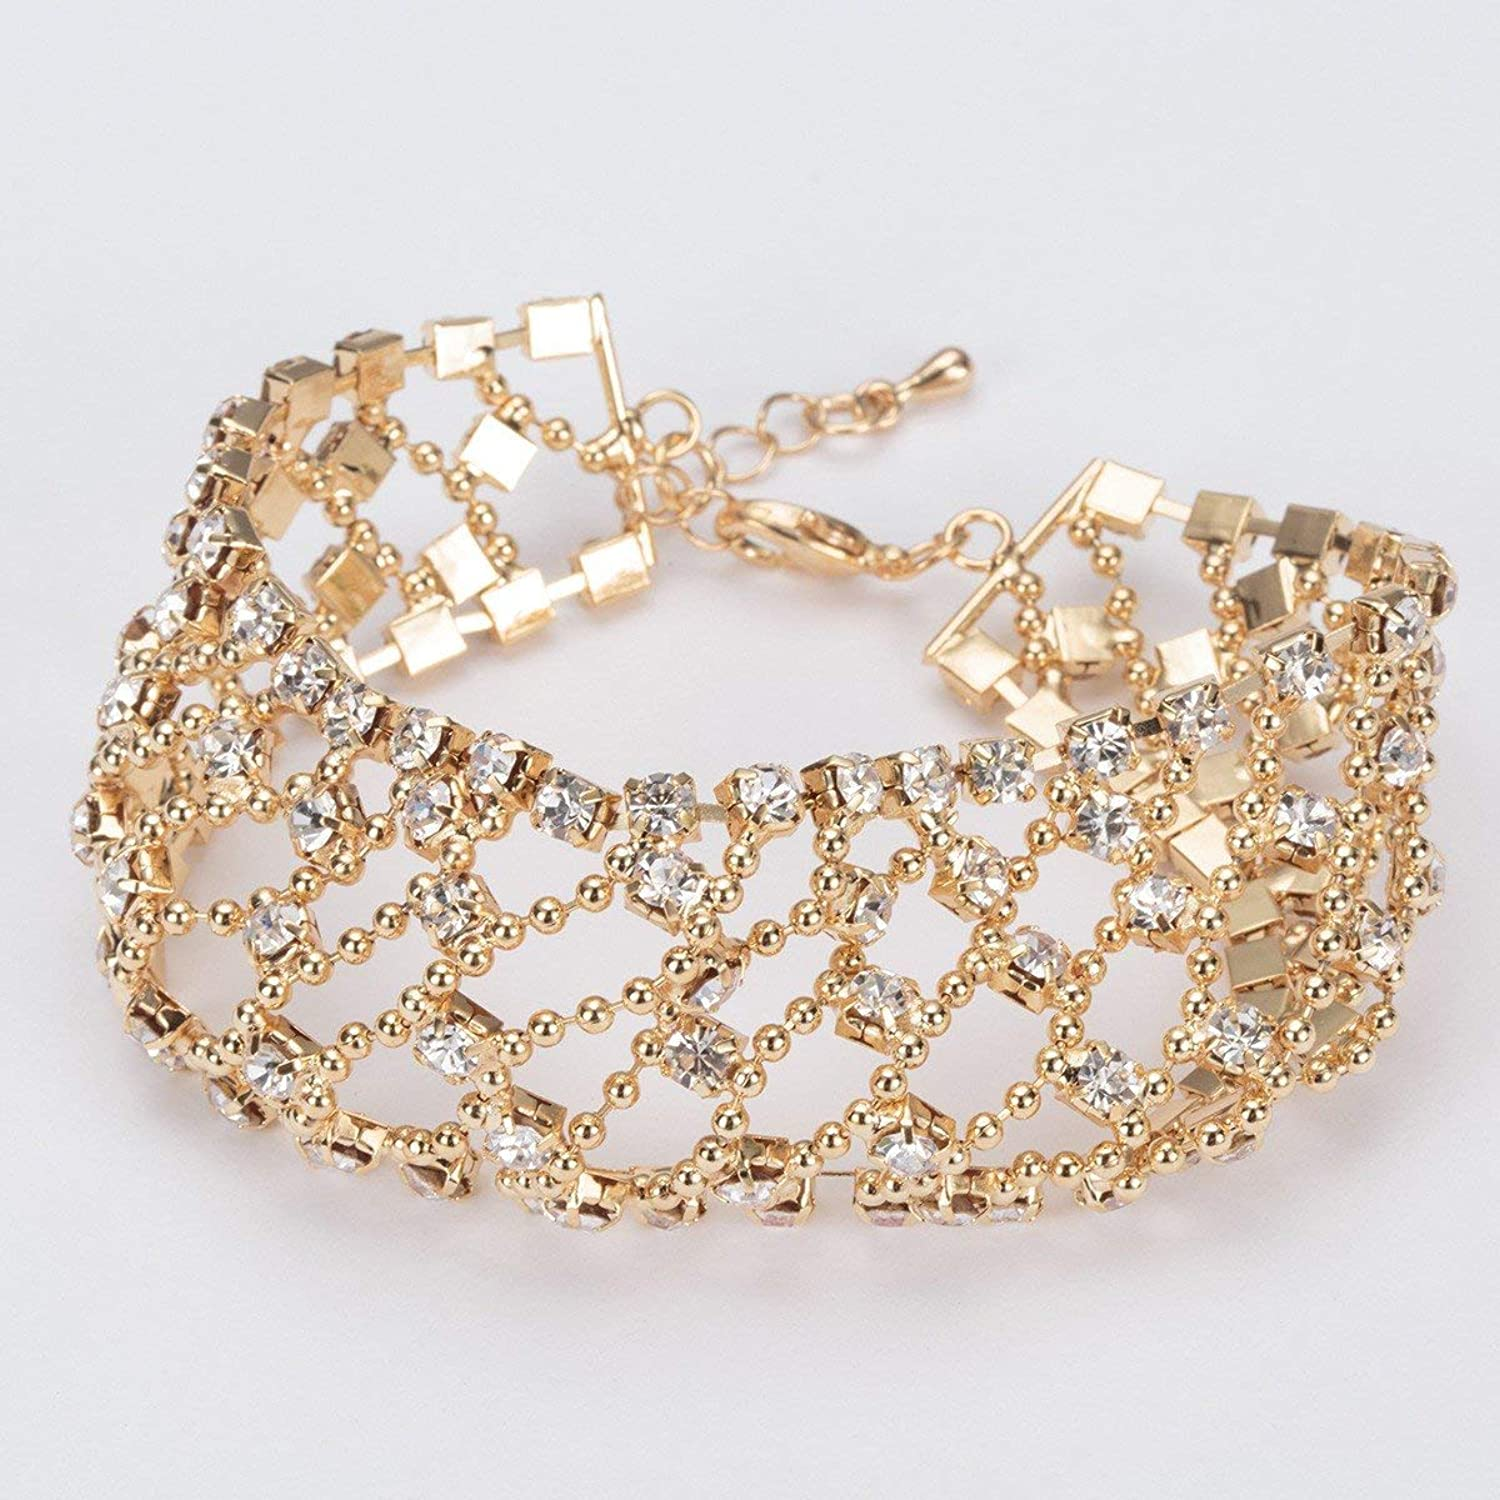 Zicue Stylish Charming Bracelet Exquisite Ornaments The Ring